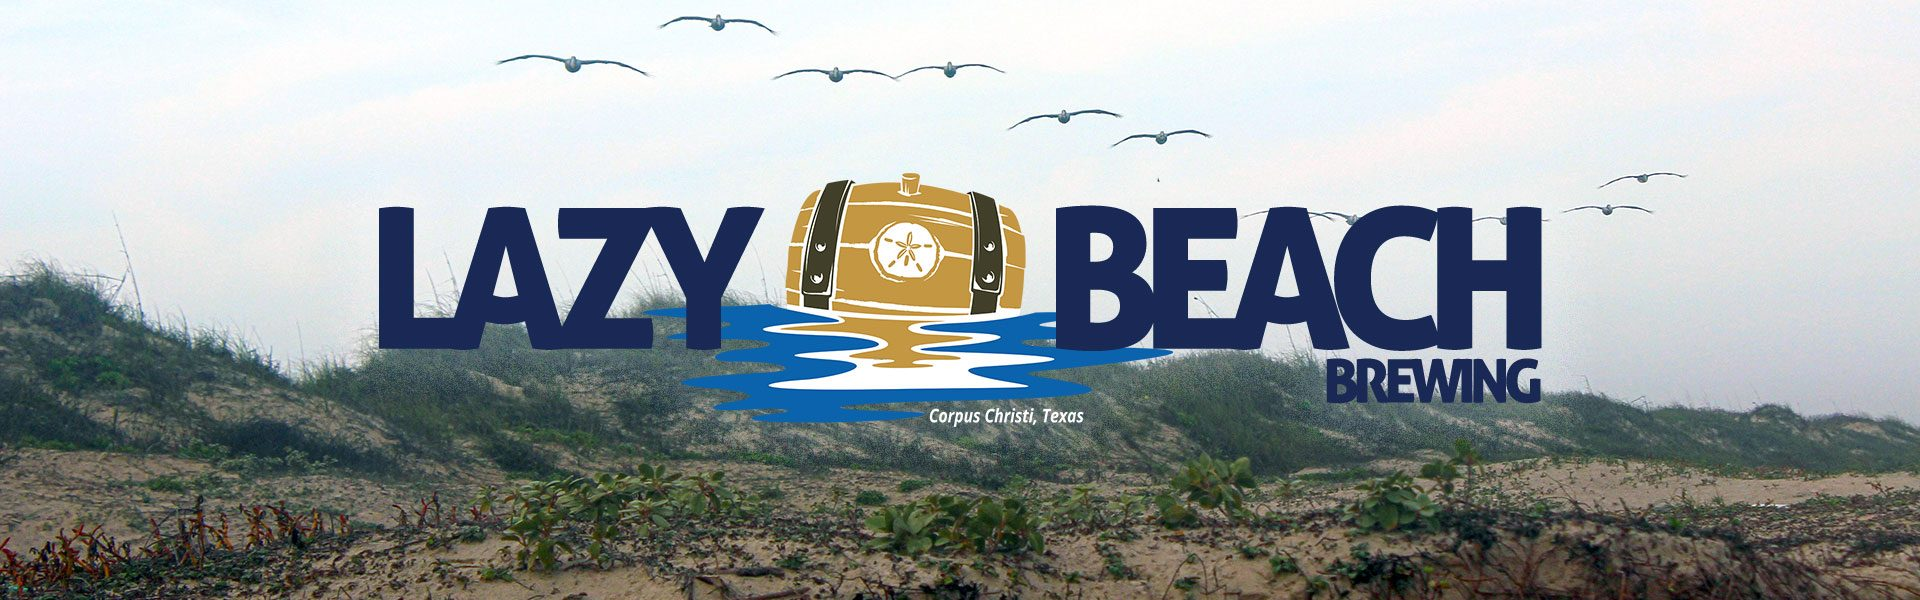 Lazy Beach Brewing – Craft Beer for Corpus Christi, Texas